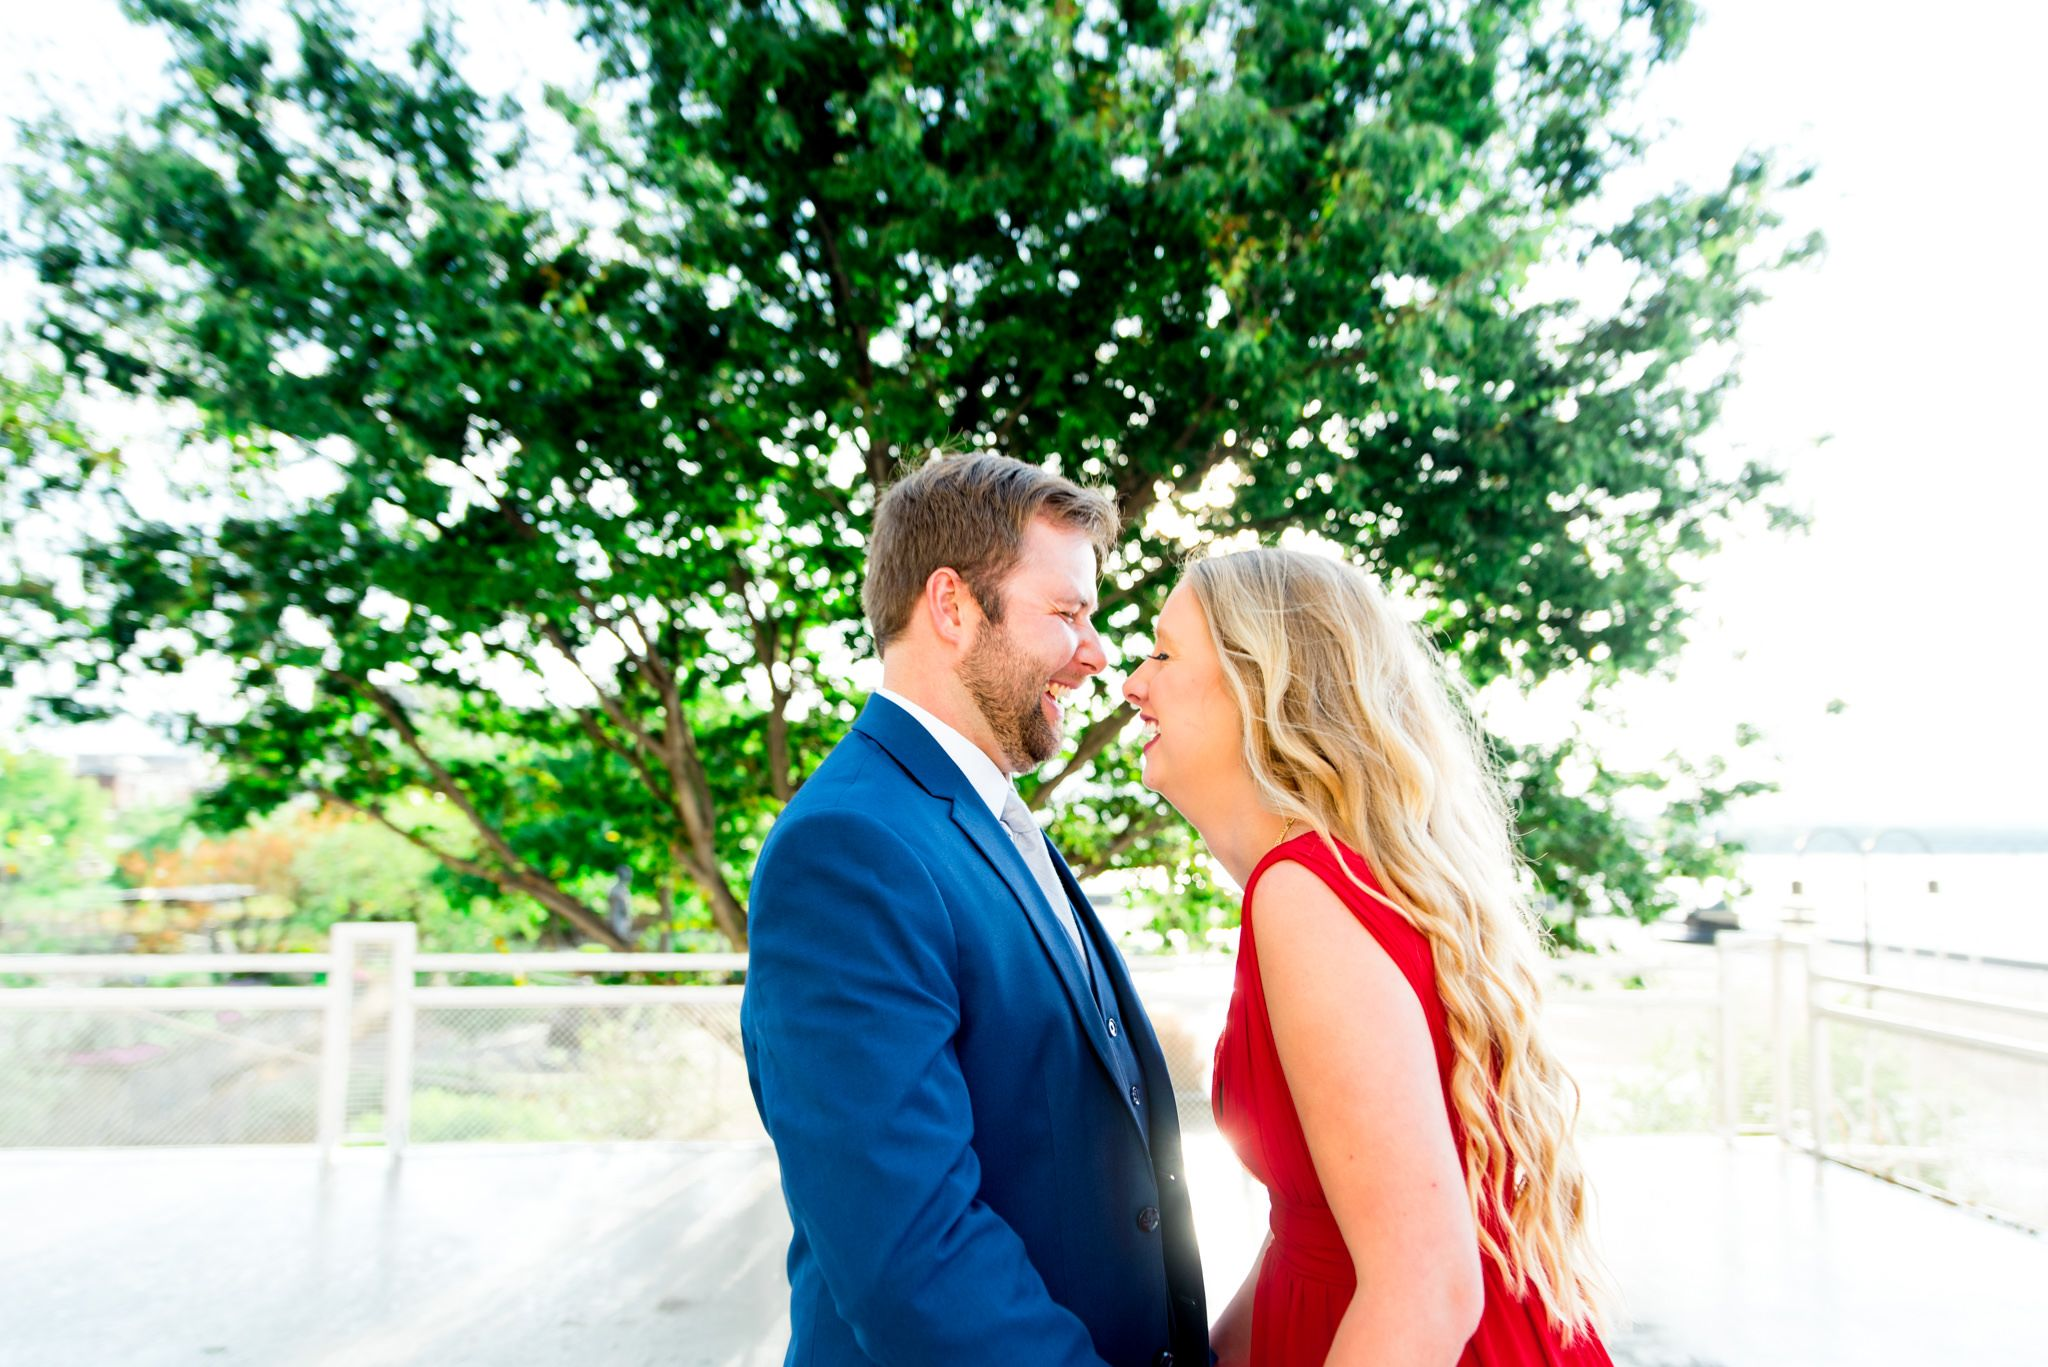 blonde woman in red dress and man in navy suit laugh with each other with eyes closed in front of big tree